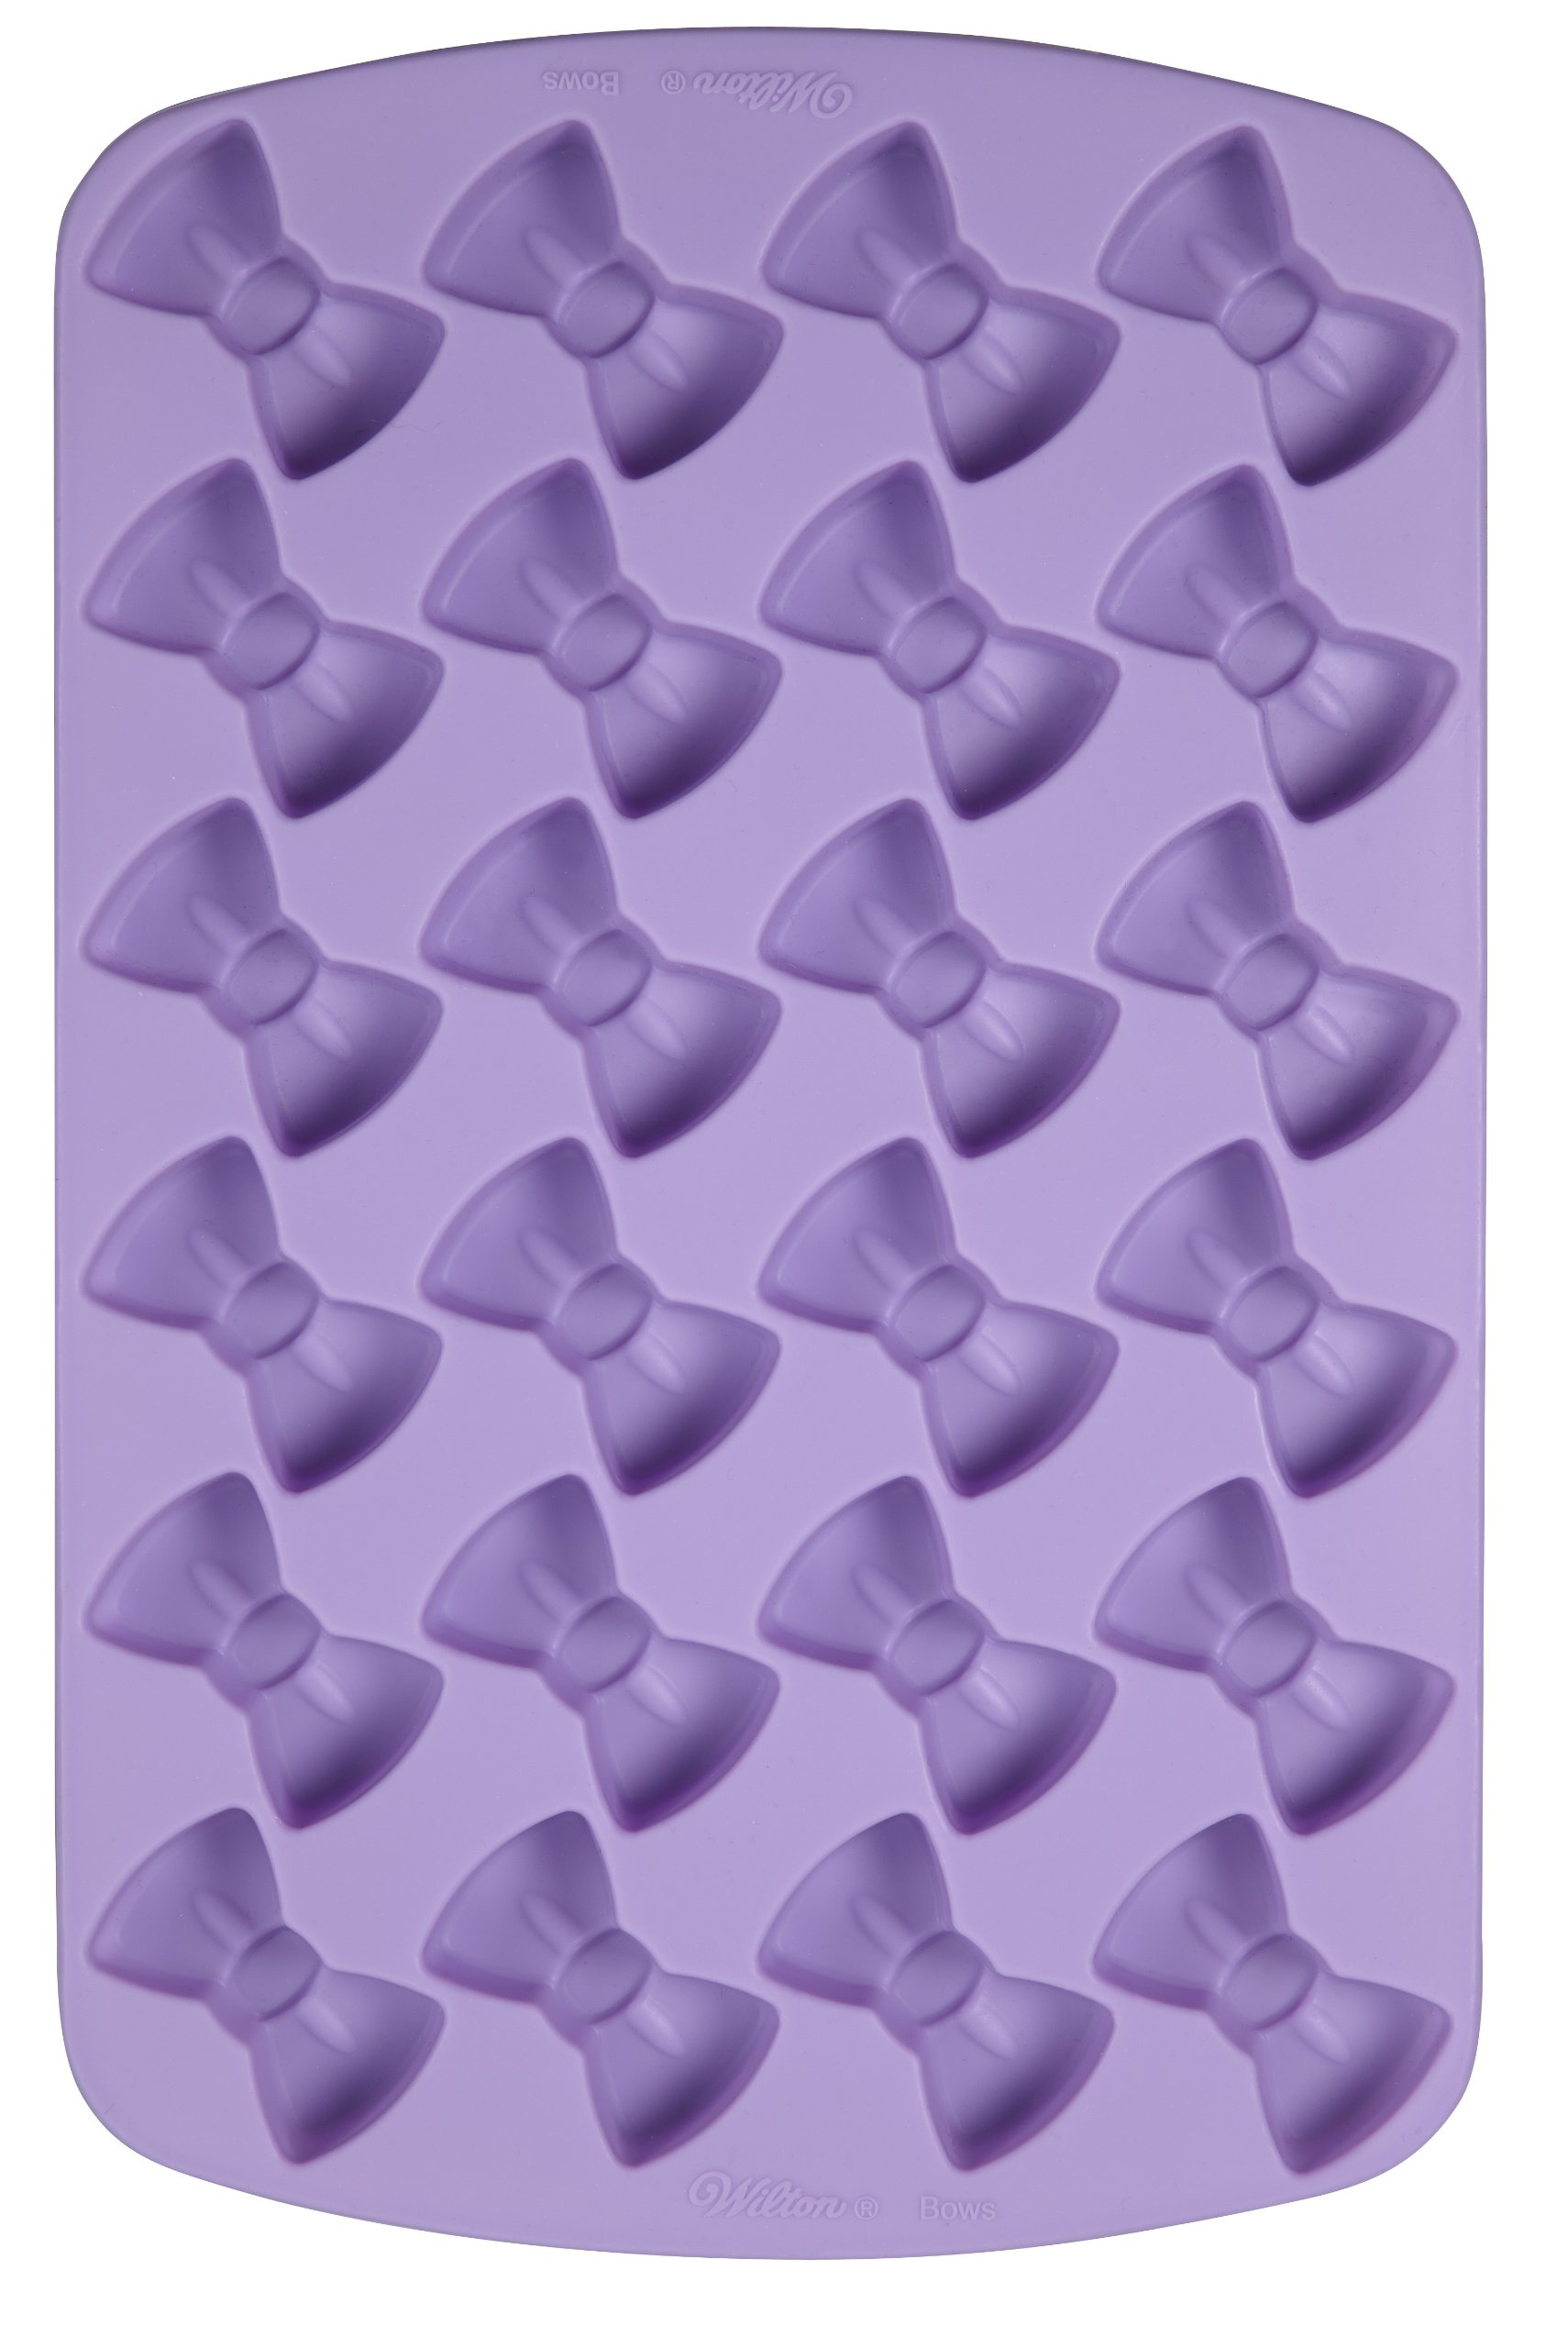 Wilton 2105-6922 Bow Silicone Treat Mold, 24 Cavities- Discontinued By Manfacturer by Wilton (Image #1)